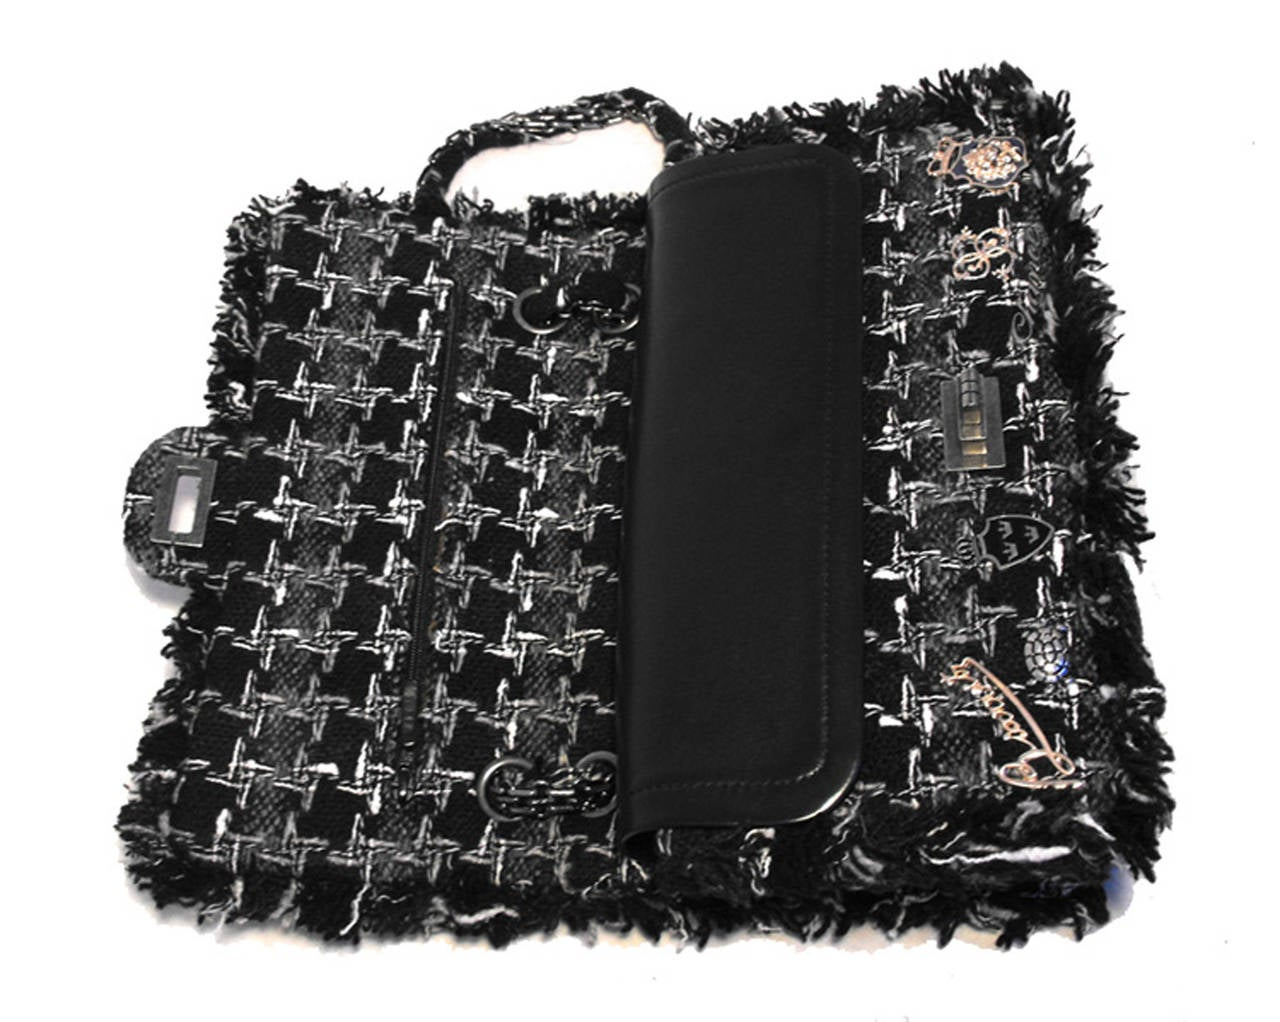 Chanel Black Tweed Charms Classic 10inch 2.55 Flap-runway Edition For Sale 2